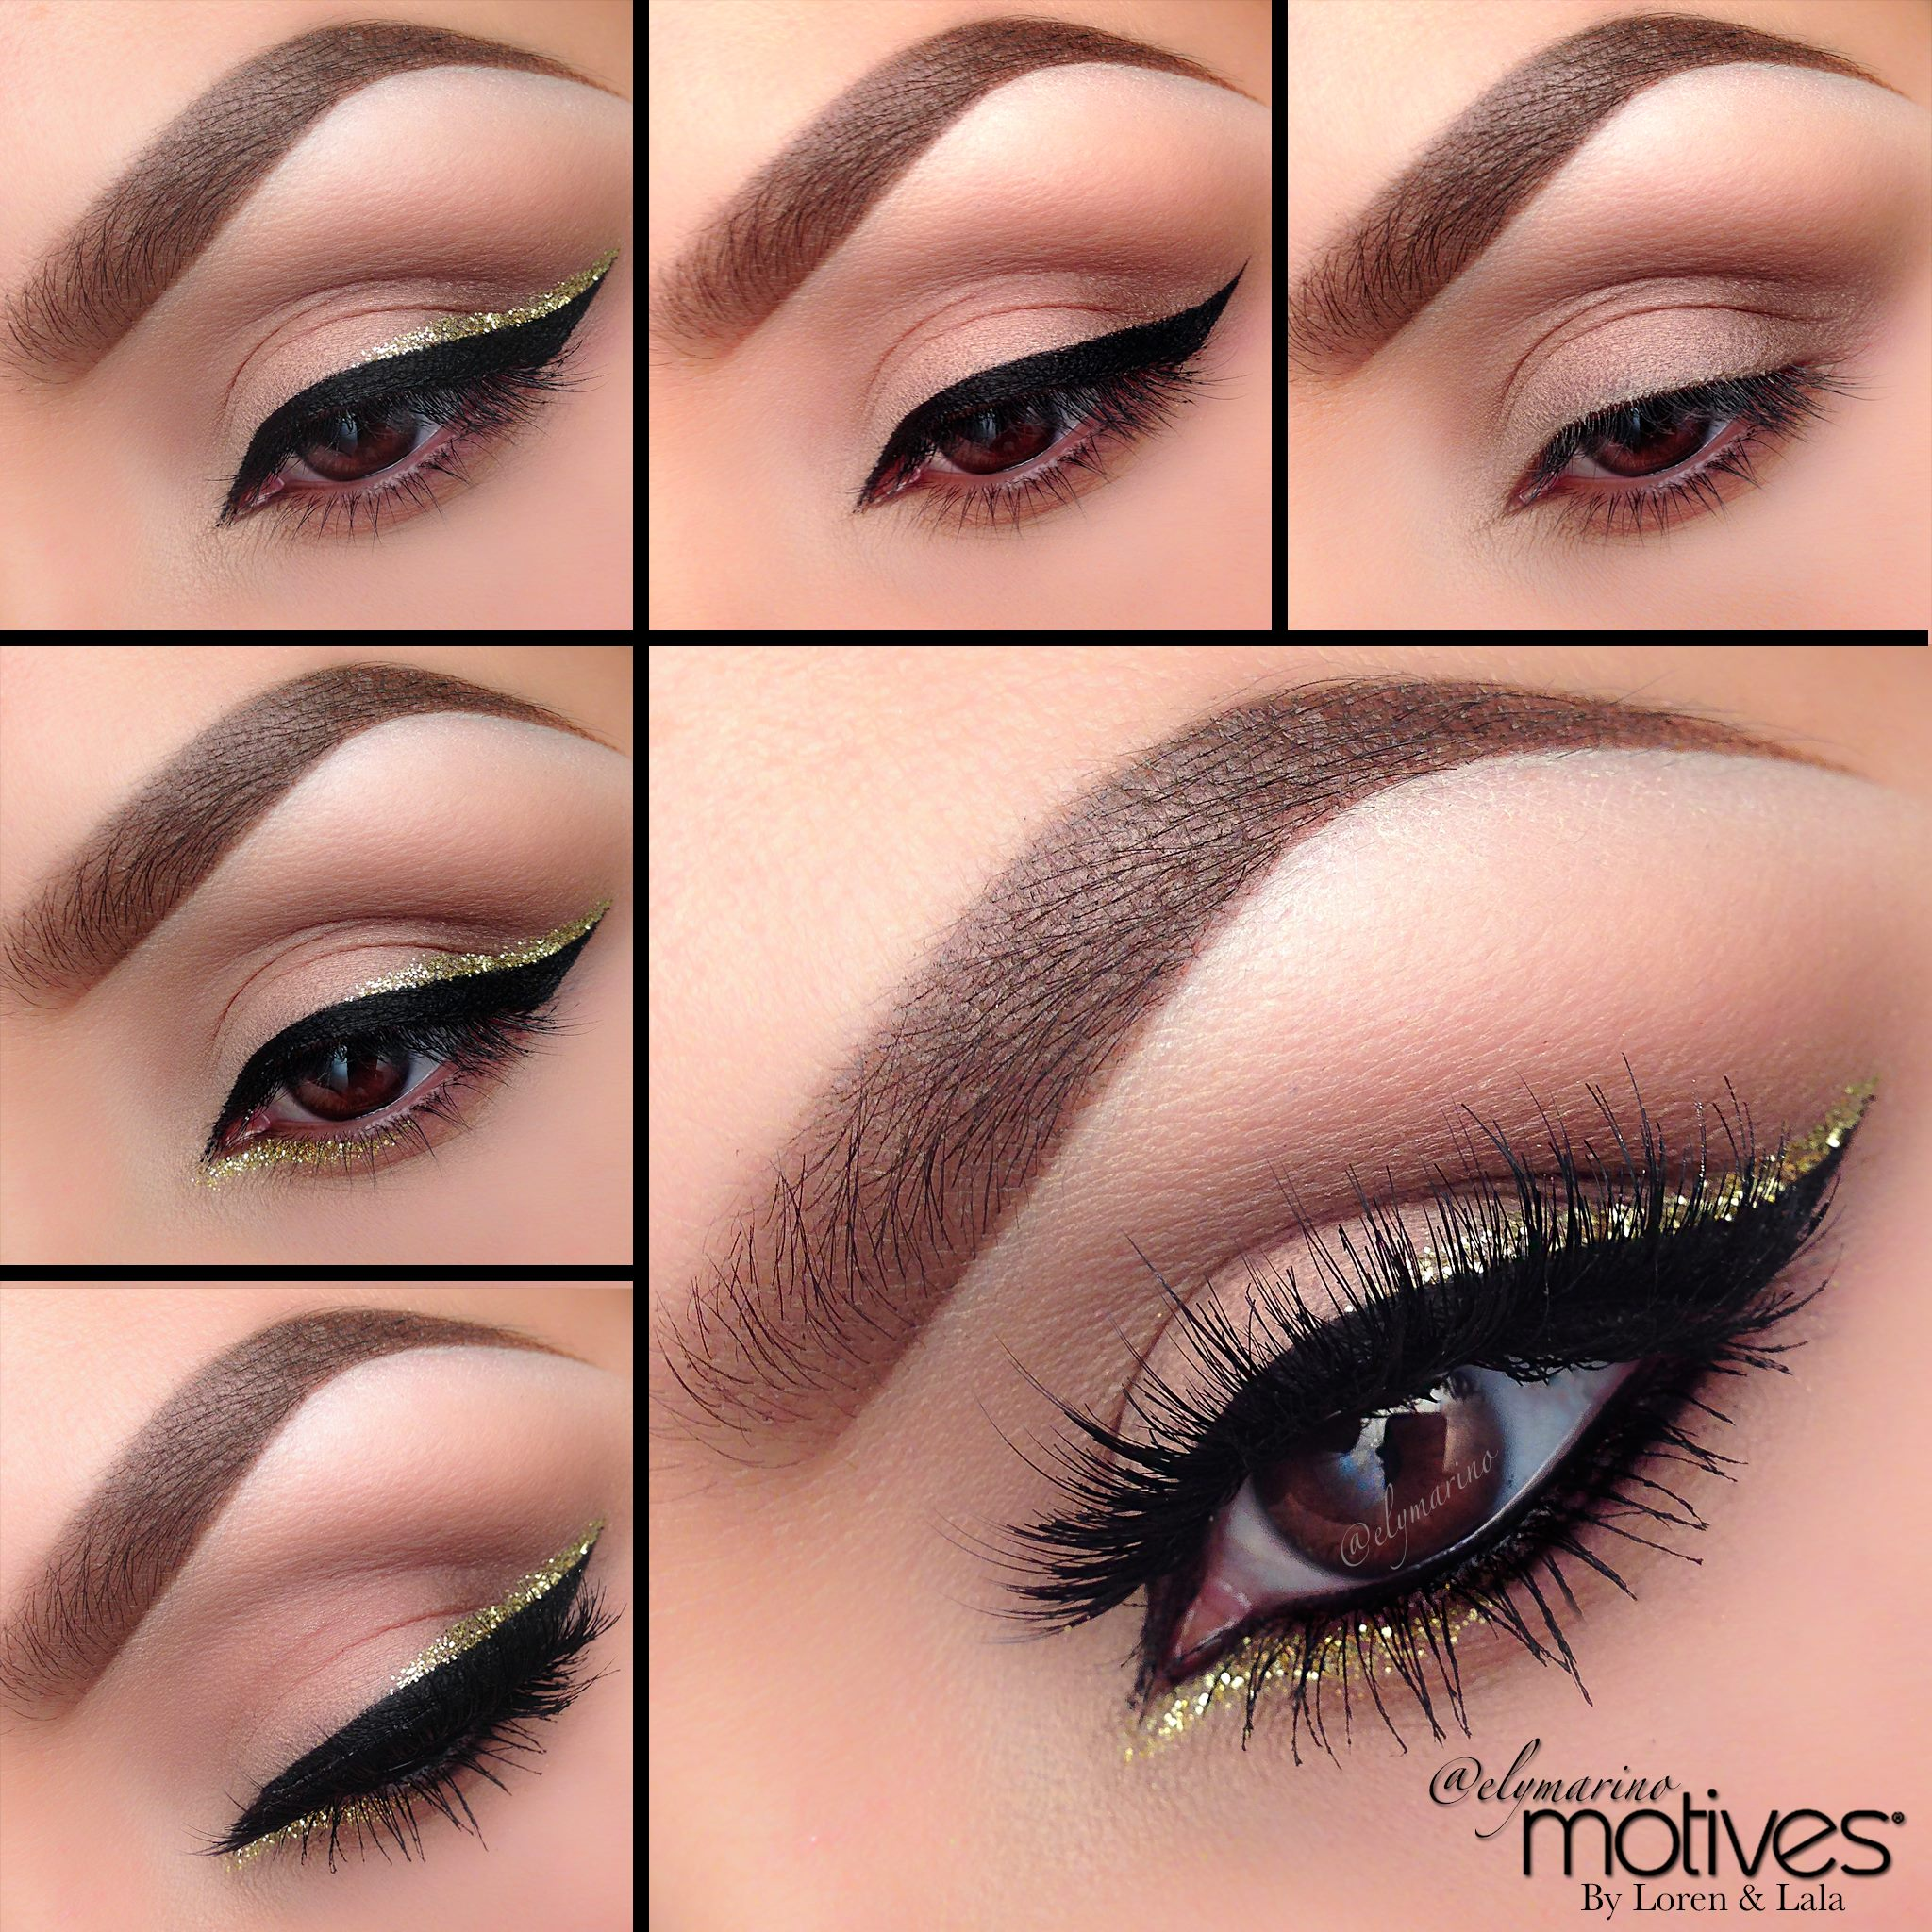 Get The Holiday Season Sparkle With Motives Cosmetics ...